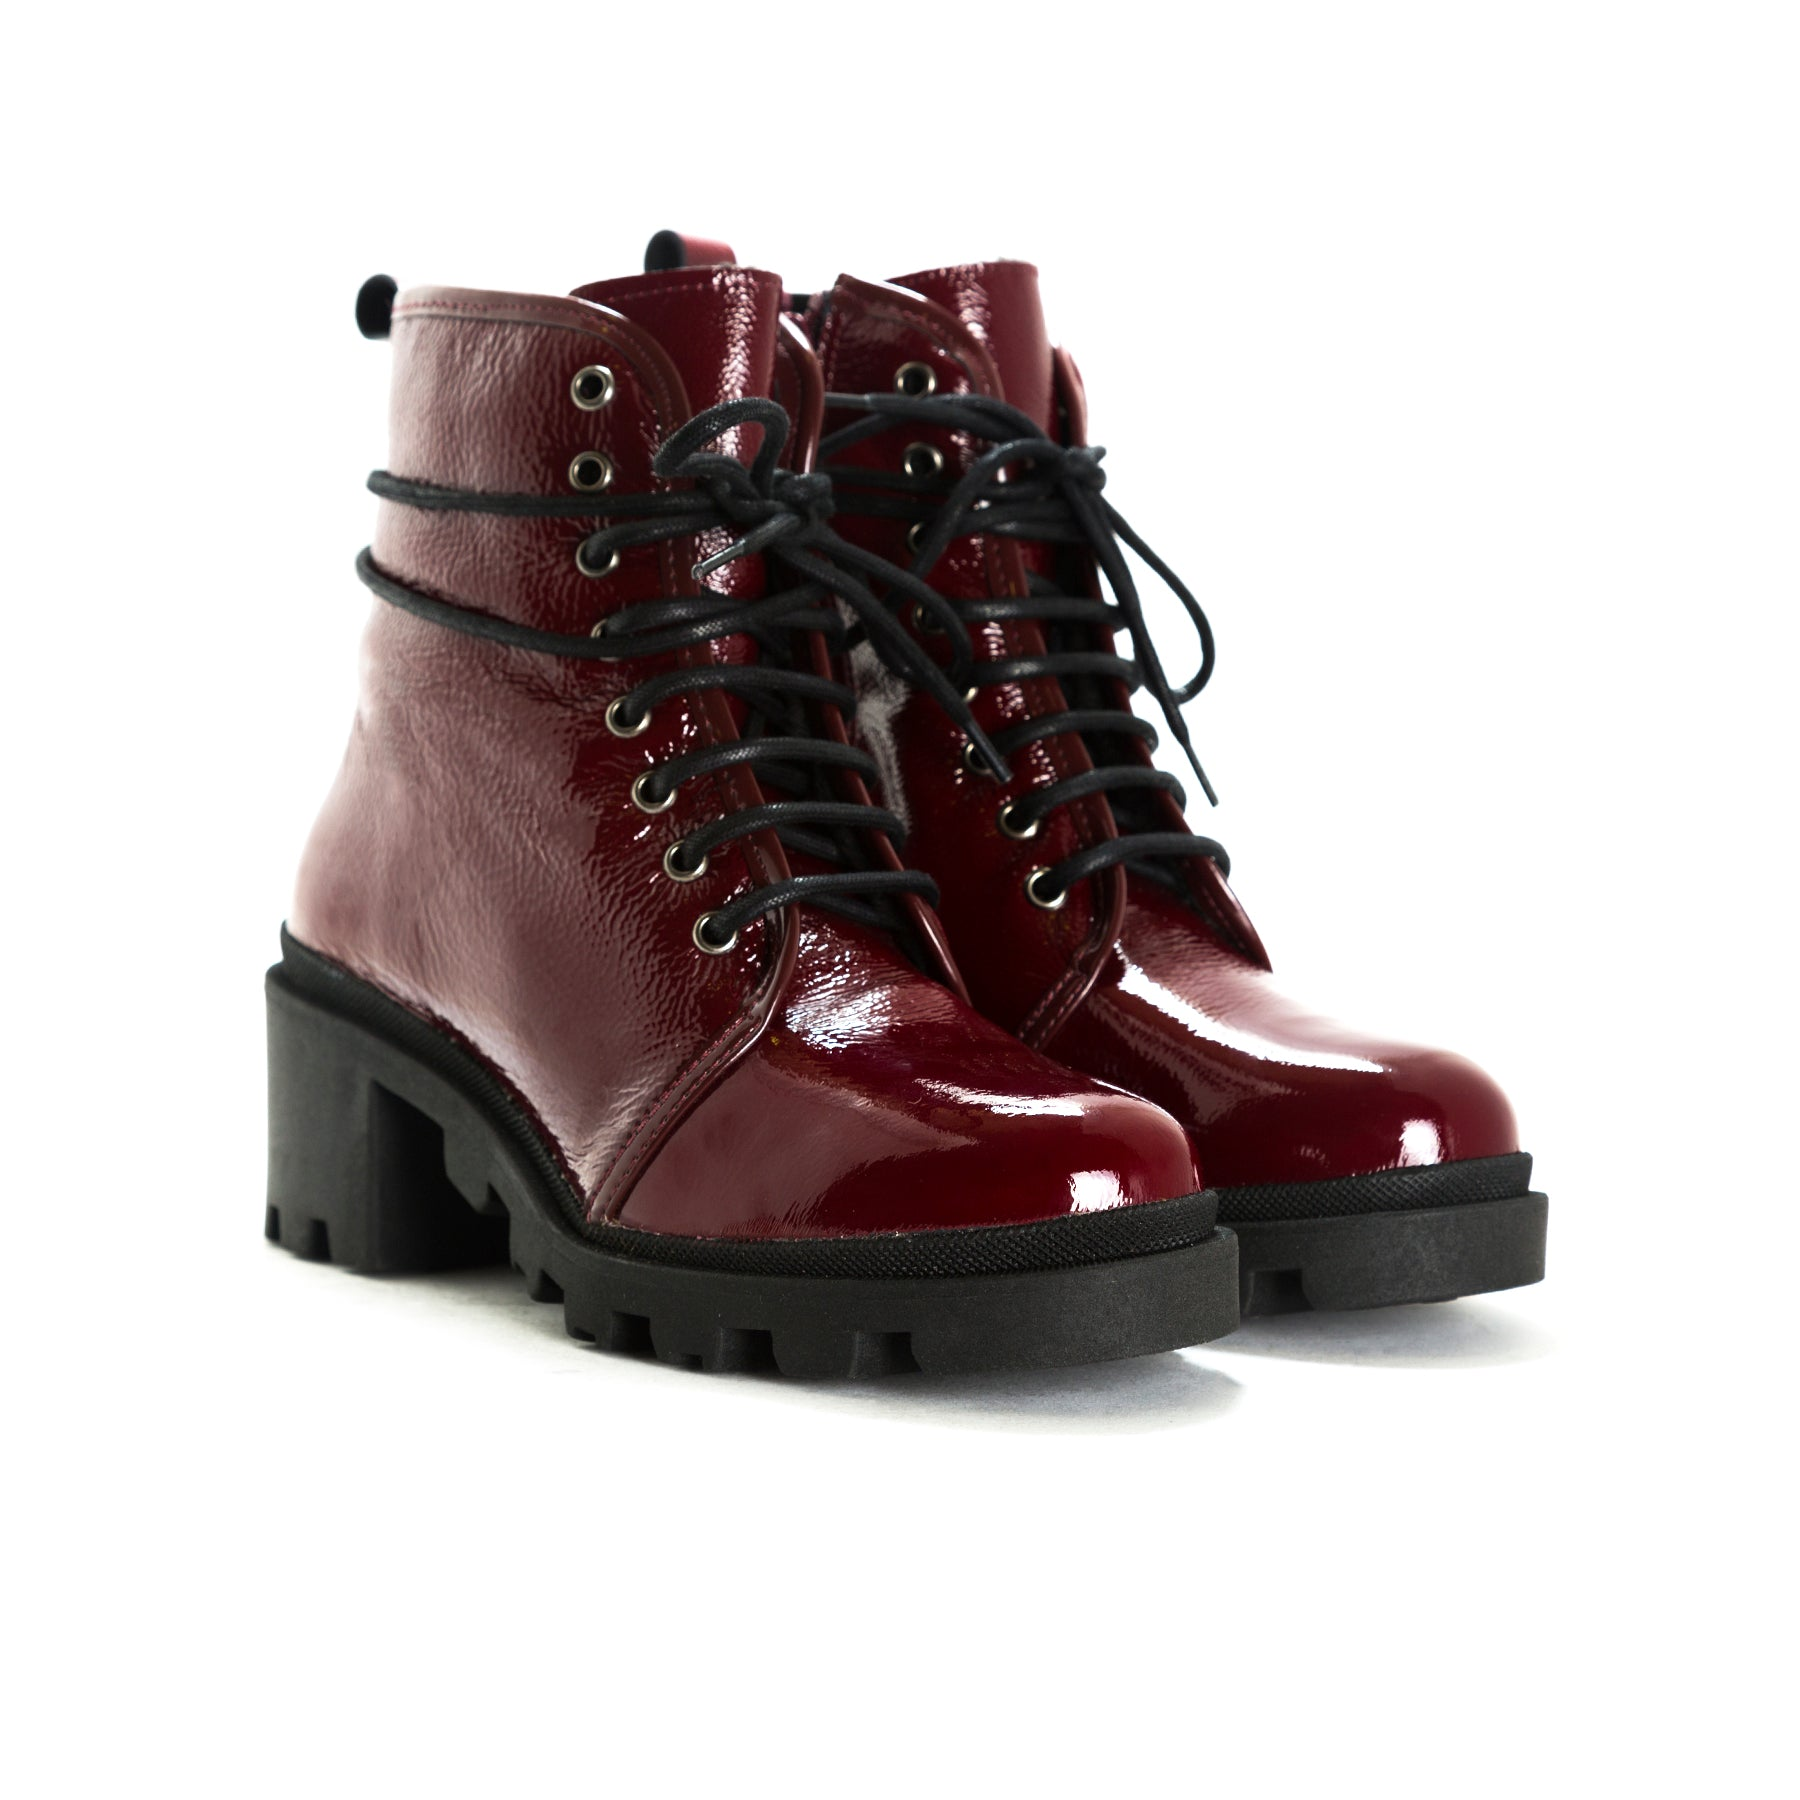 Holo Bordo Naplack Ankle Boots